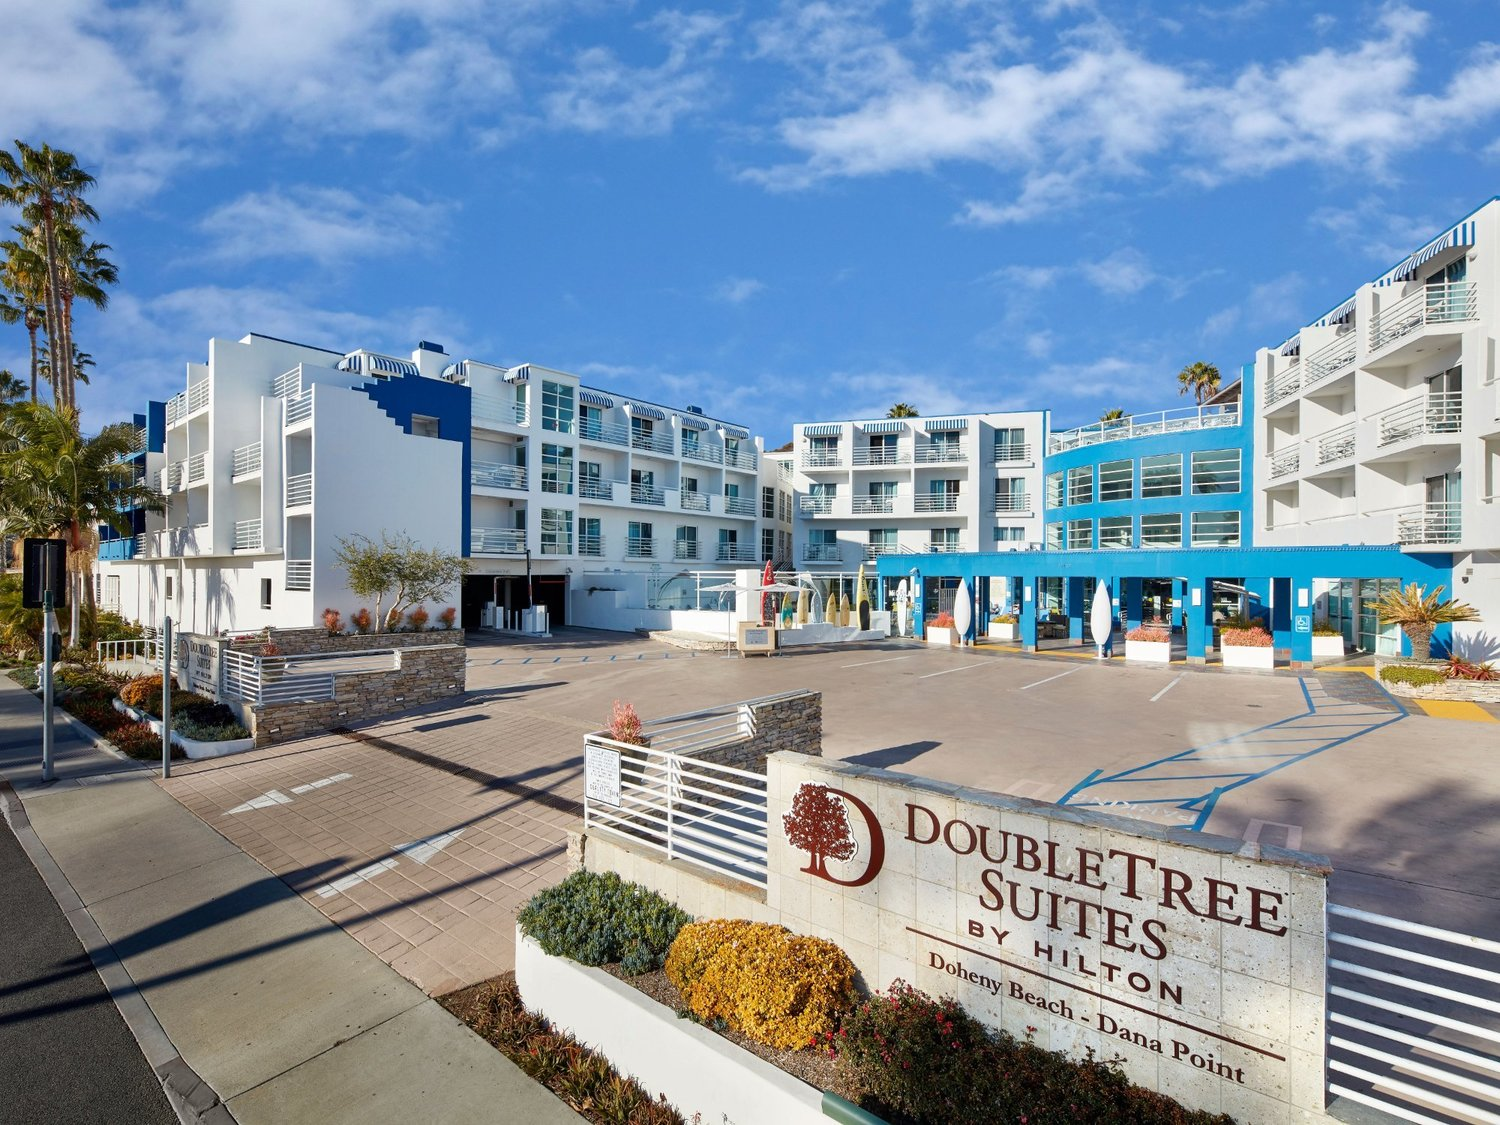 Doubletree By Hilton Hotel Doheny Beach Dana Point